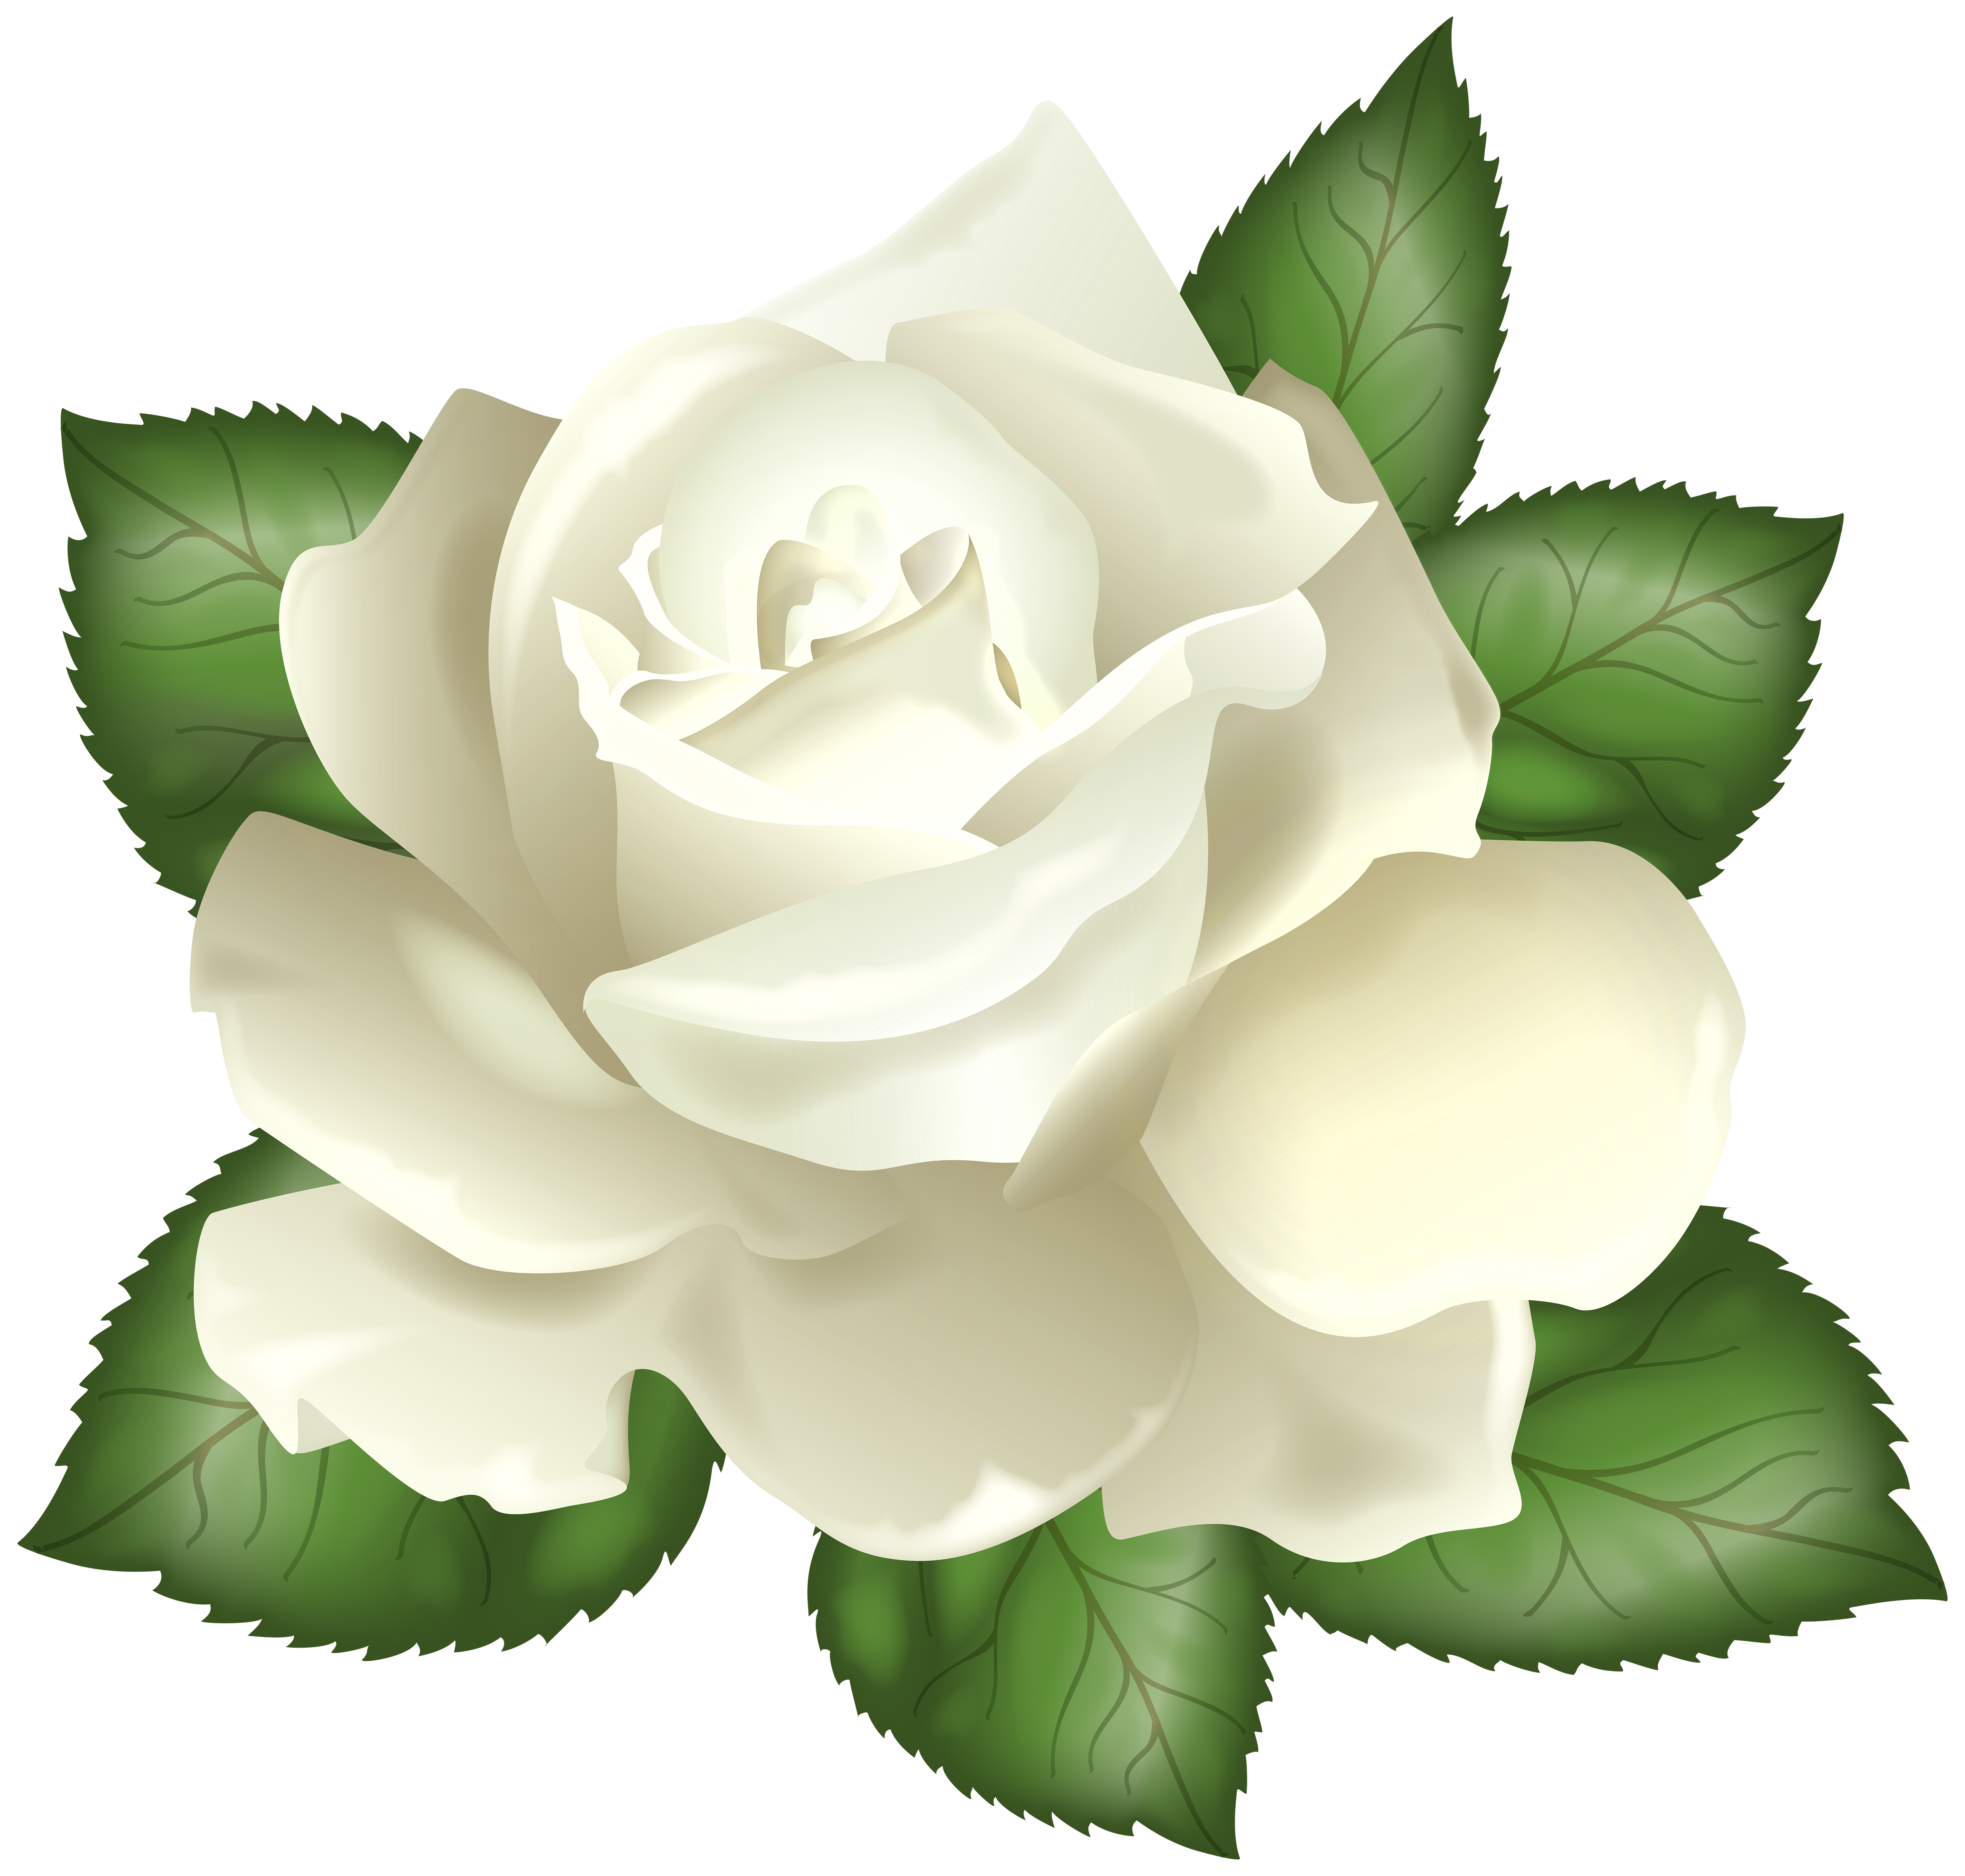 White Roses Clipart & Free White Roses Clipart.png.